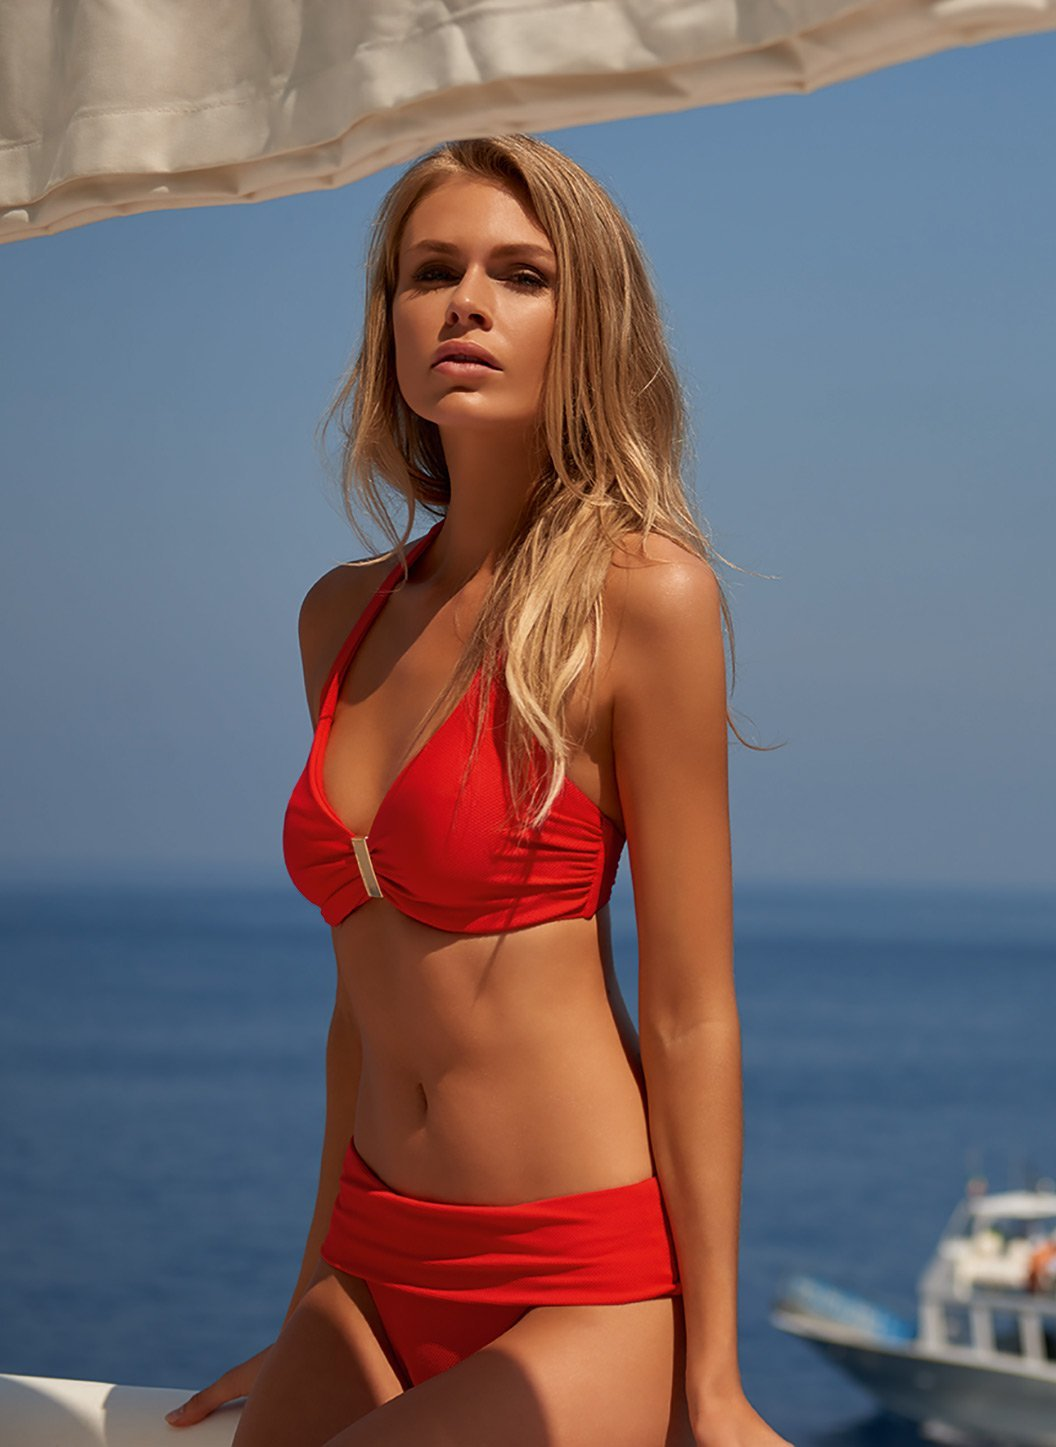 provence red pique halterneck supportive bikini lifestyle 2019